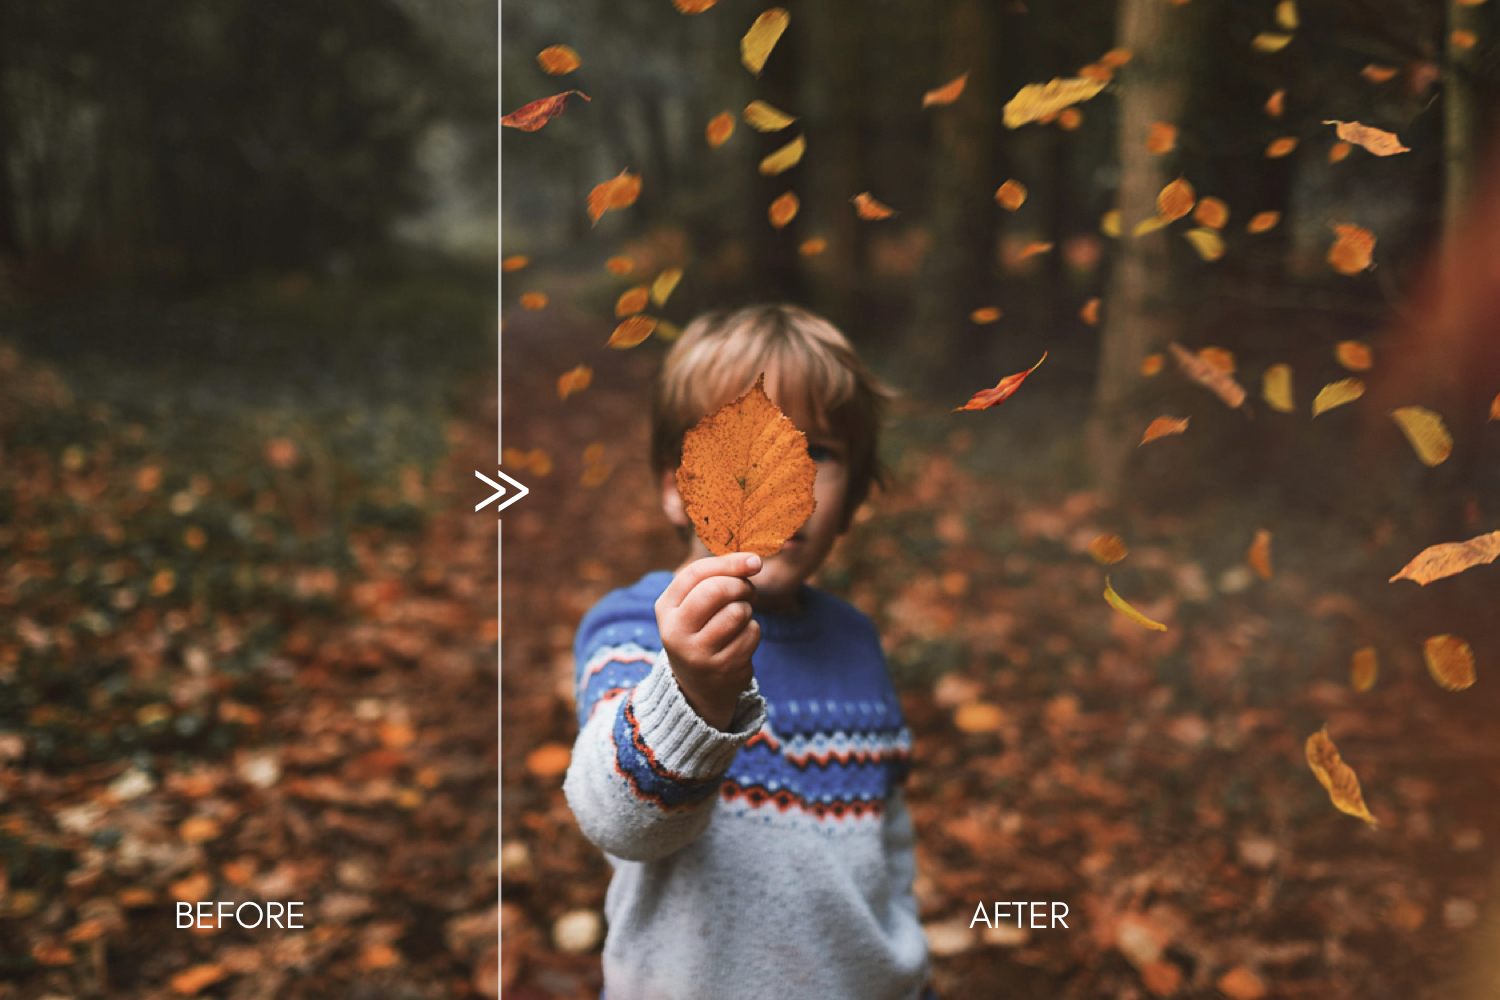 70 Natural Falling Autumn Leaves Photoshop Overlays - autumn falling leaves photoshop photography overlays 3 -